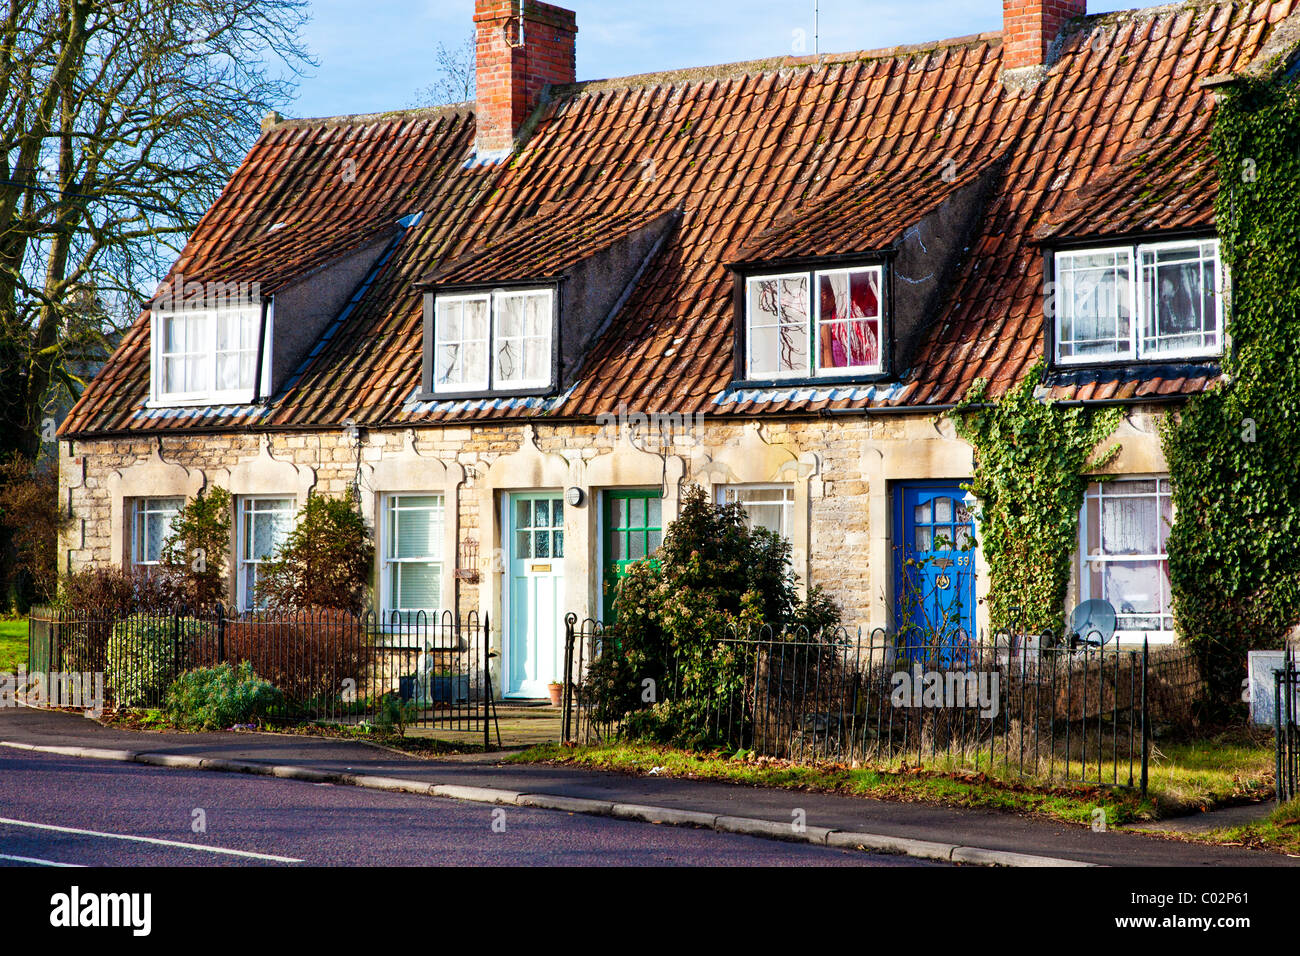 A Row Of Terraced Stone Cottages With Dormer Windows And